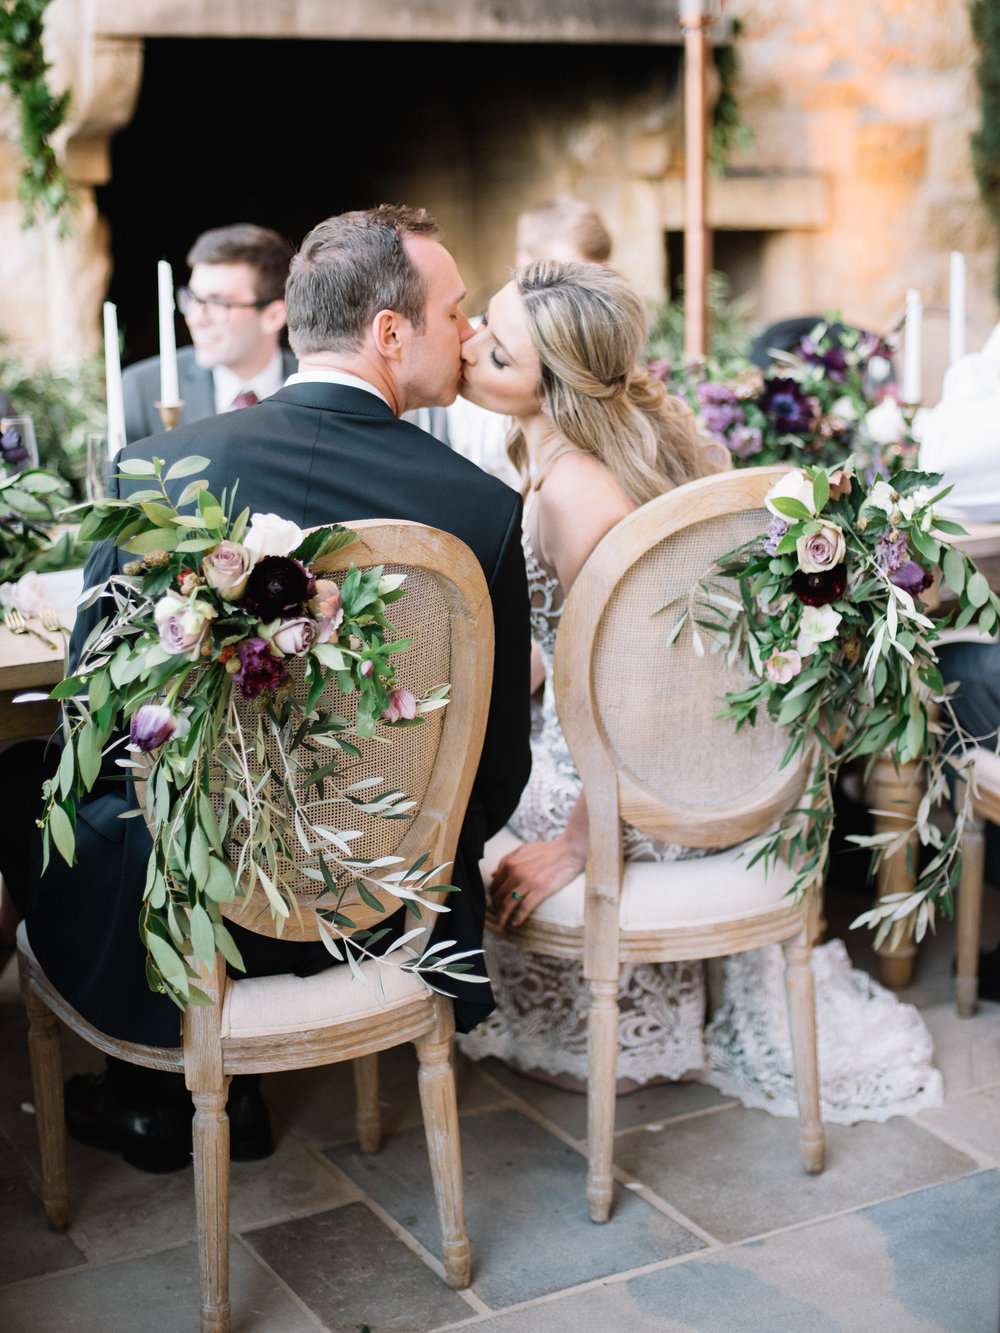 santa-barbara-elopement-elope-pop-up-wedding-planning-planner-coordinator-sunstone-villa-winery-vineyard-tuscan-olive-purple-ynez-garland-brass (32).jpg